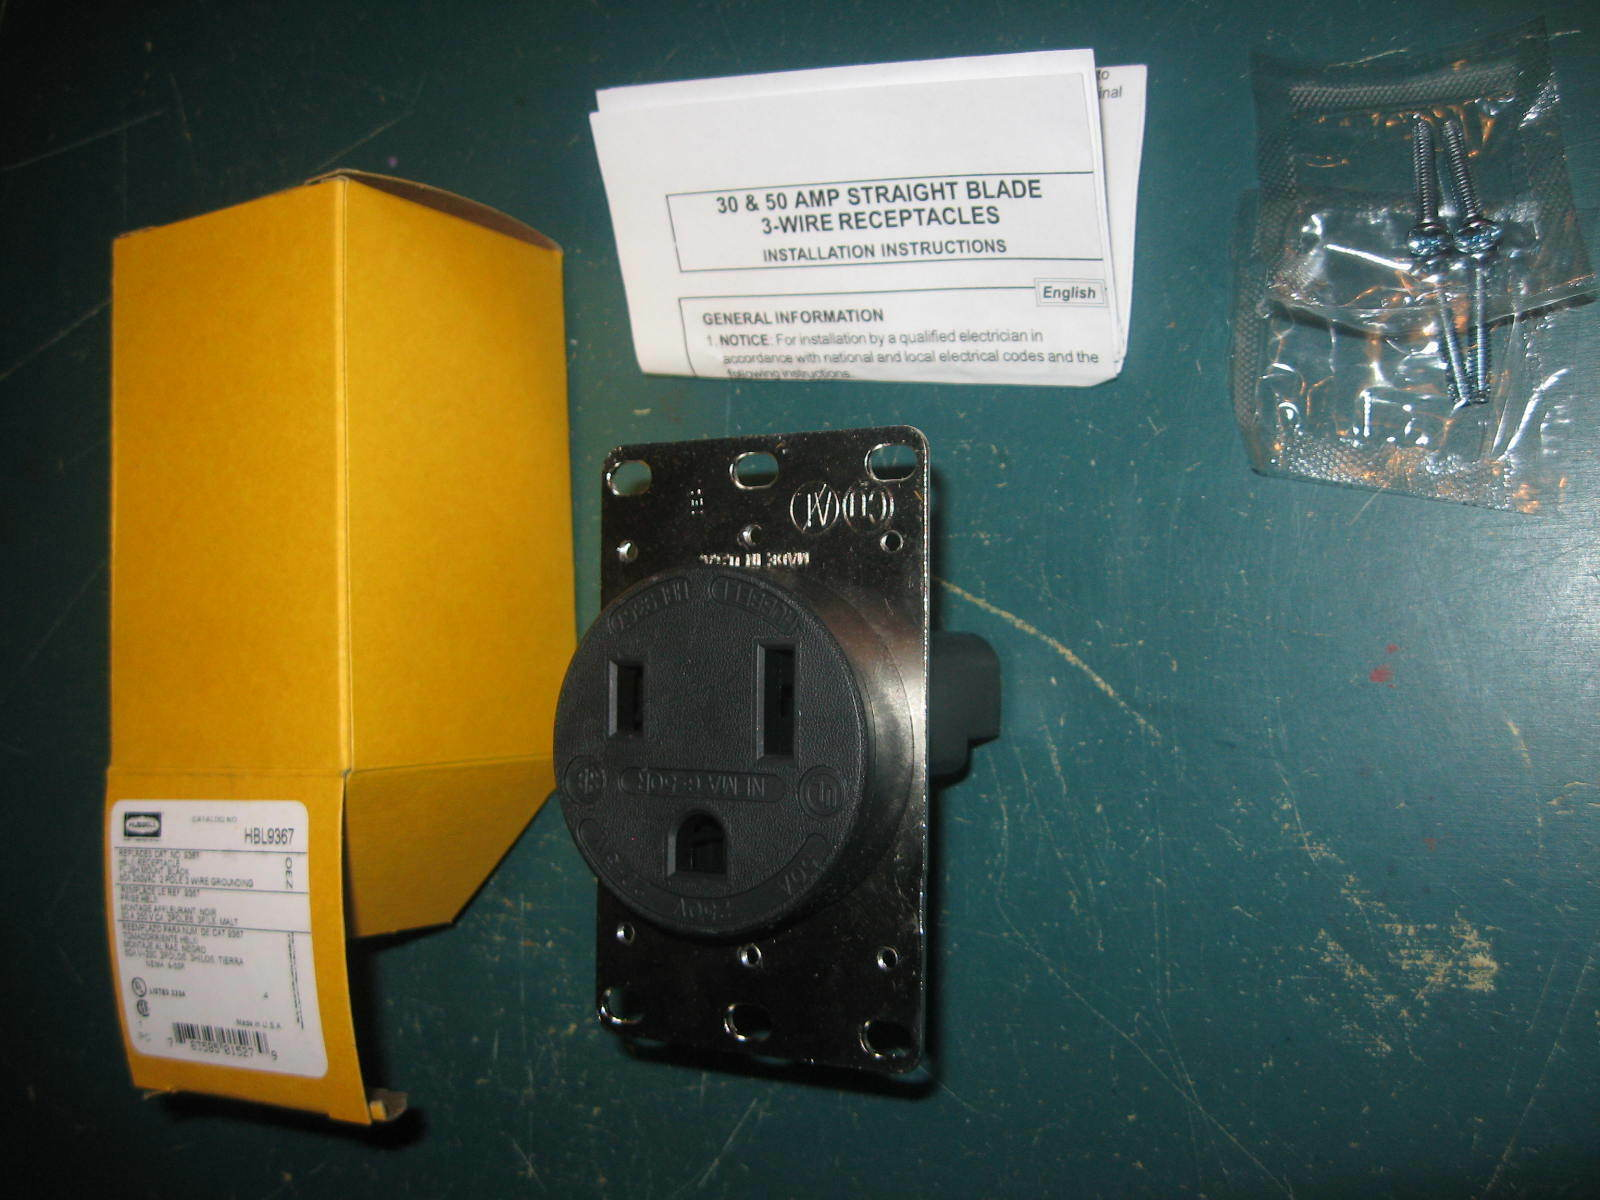 Hubbell Hbl9367 Flush Mount Black Receptacle Replacement Ebay And Industrial 30 Amp Dryer Power With 3wire